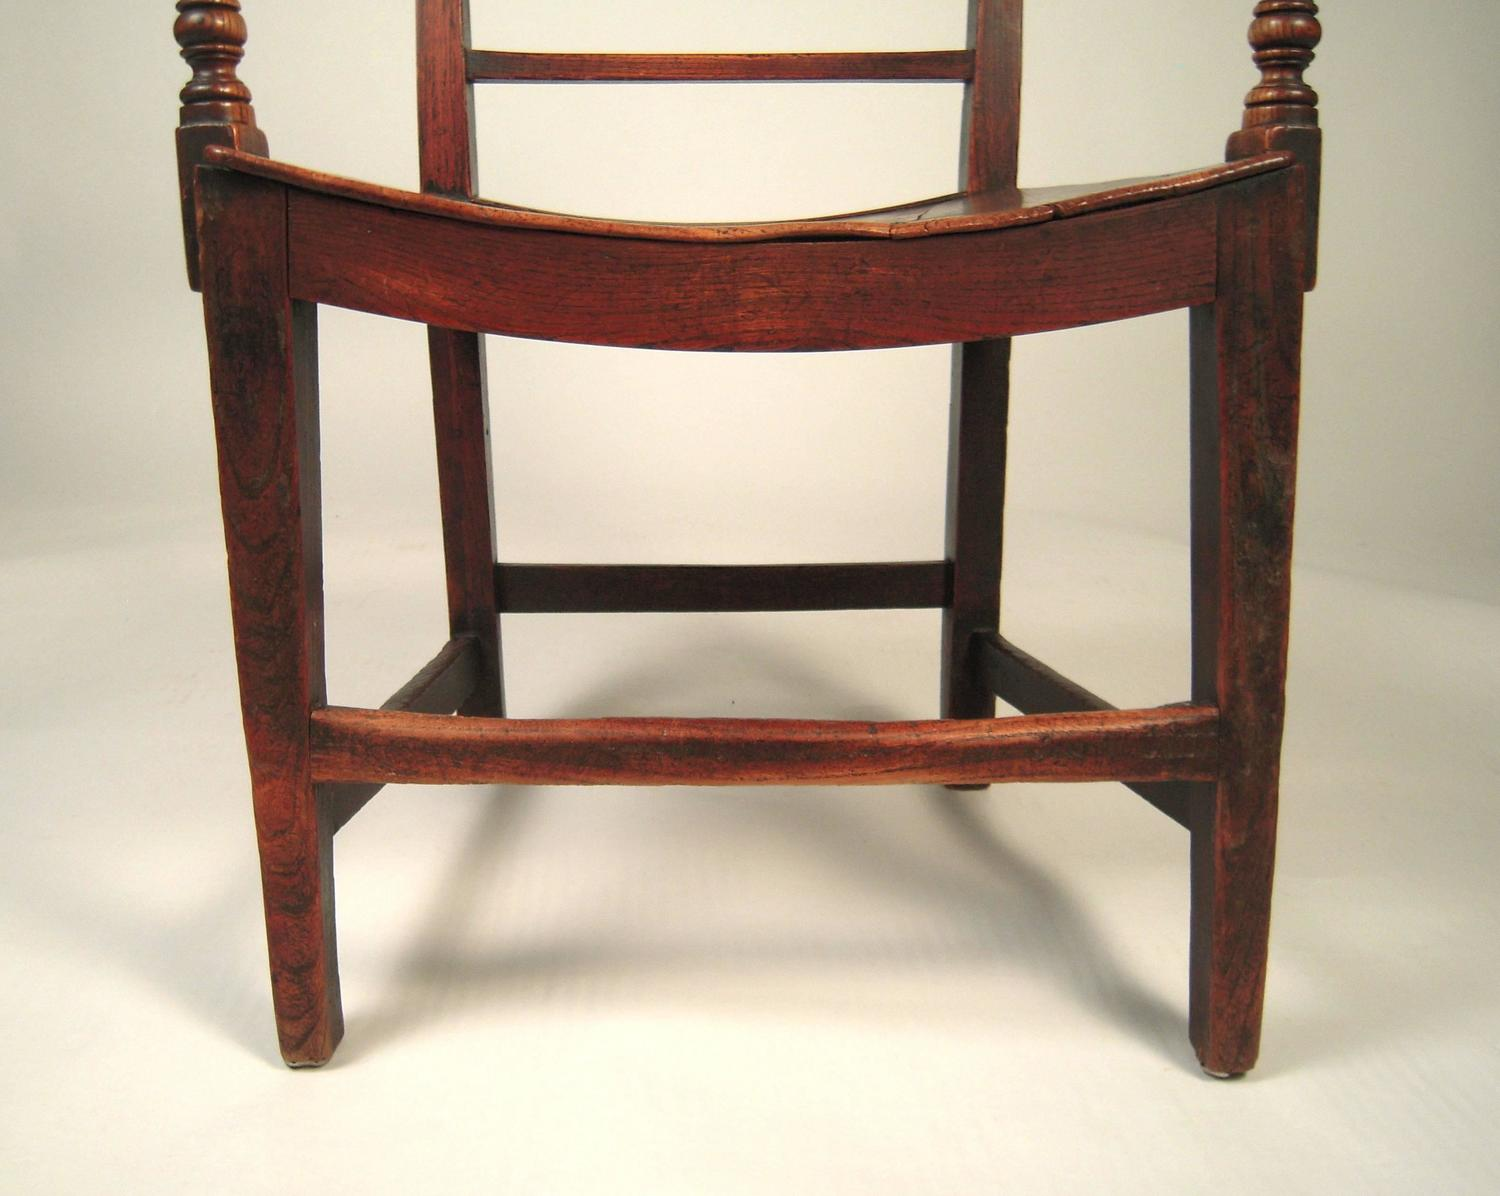 English country regency armchair in elm at 1stdibs for English country furniture